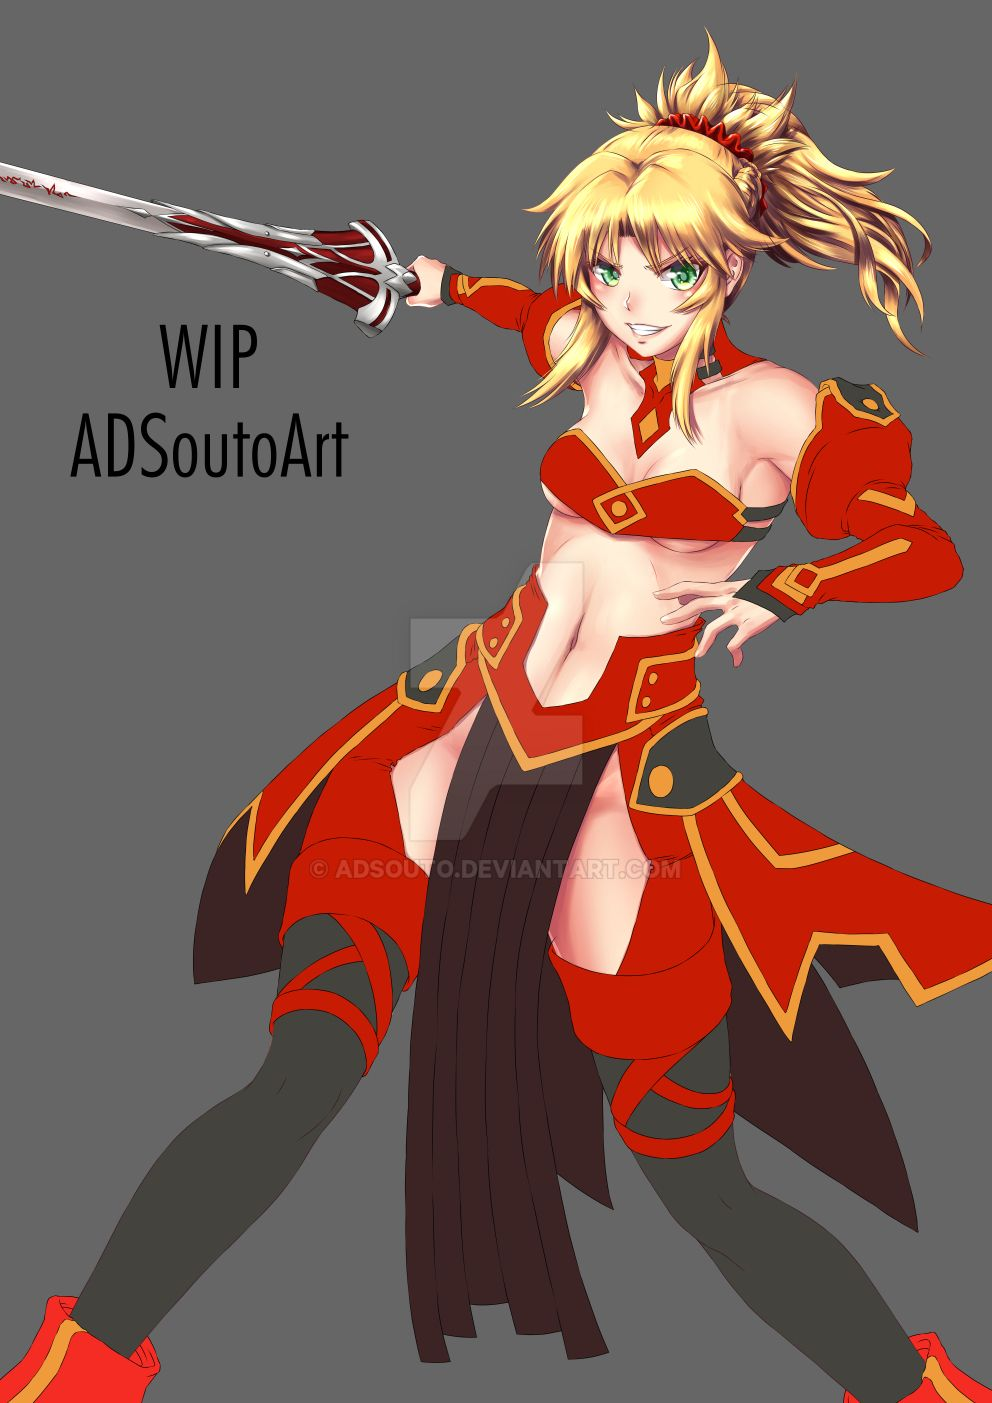 WIP Mordred Pendragon Clothes ver. by ADSouto